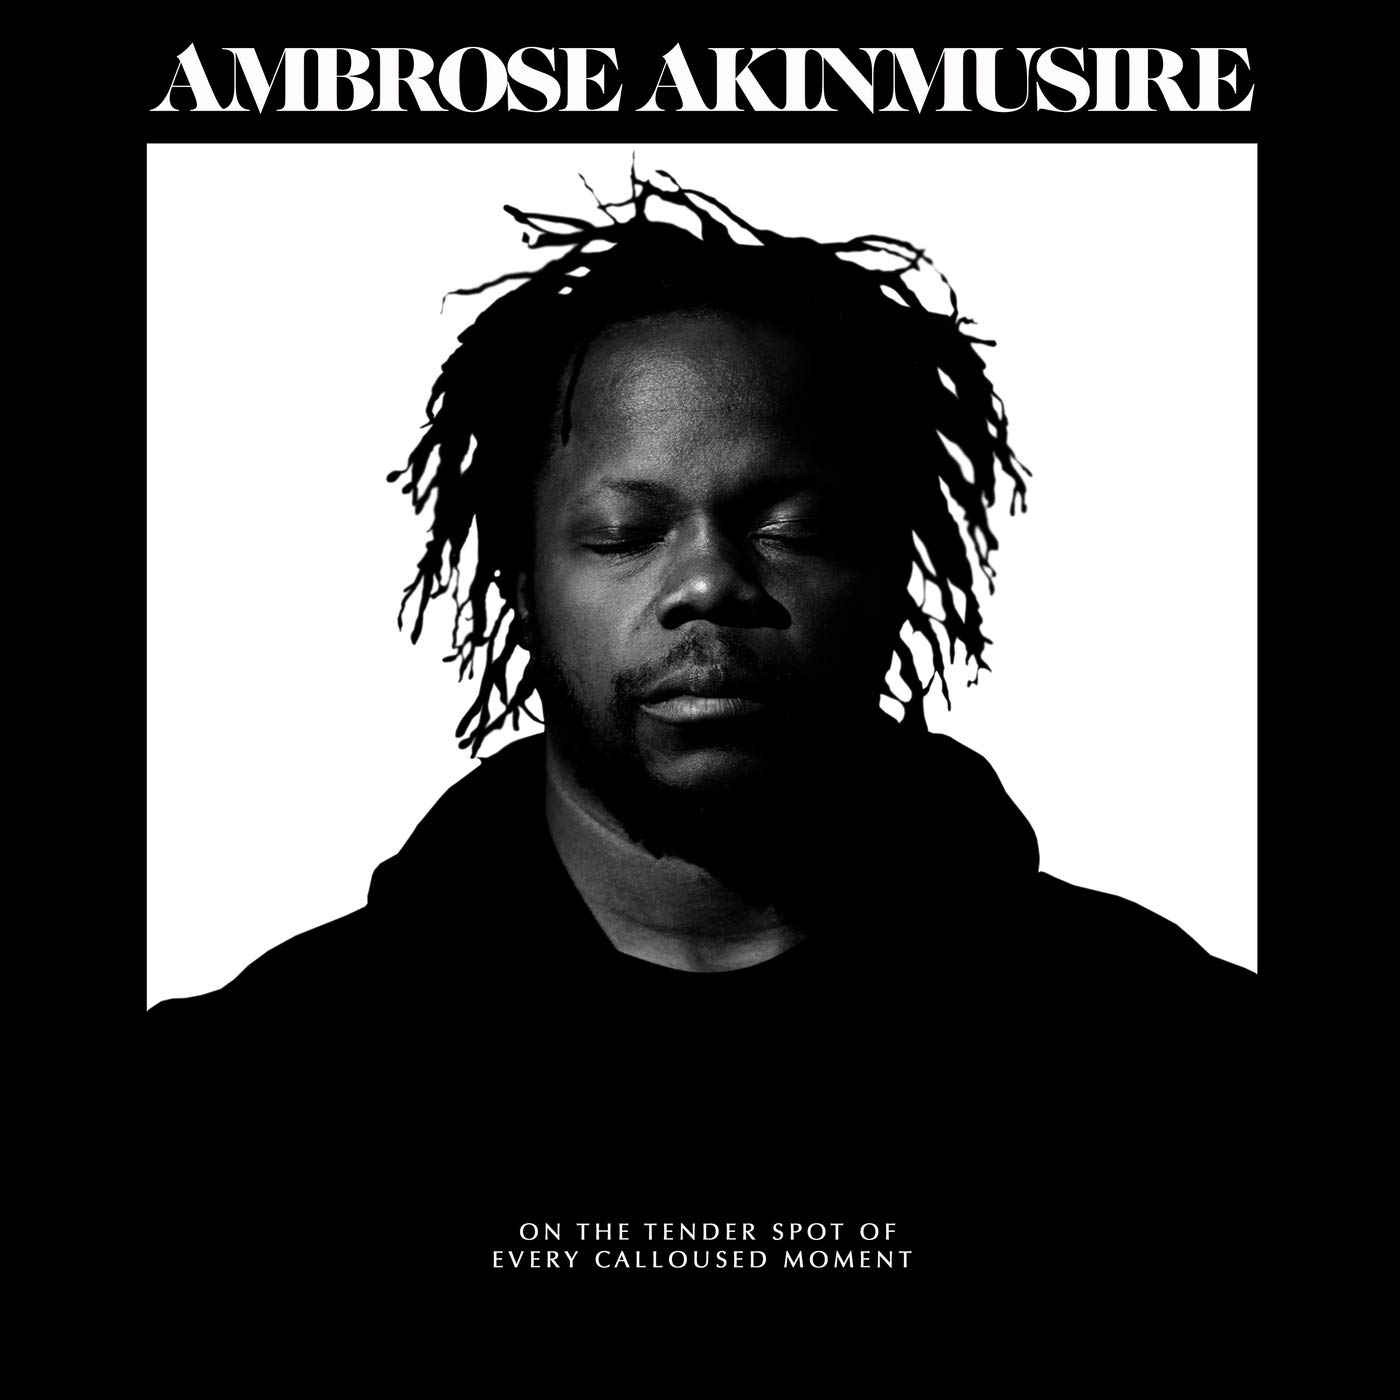 Ambrose Akinmusire - On the Tender Spot of Every Calloused Moment (2020) [FLAC] Download